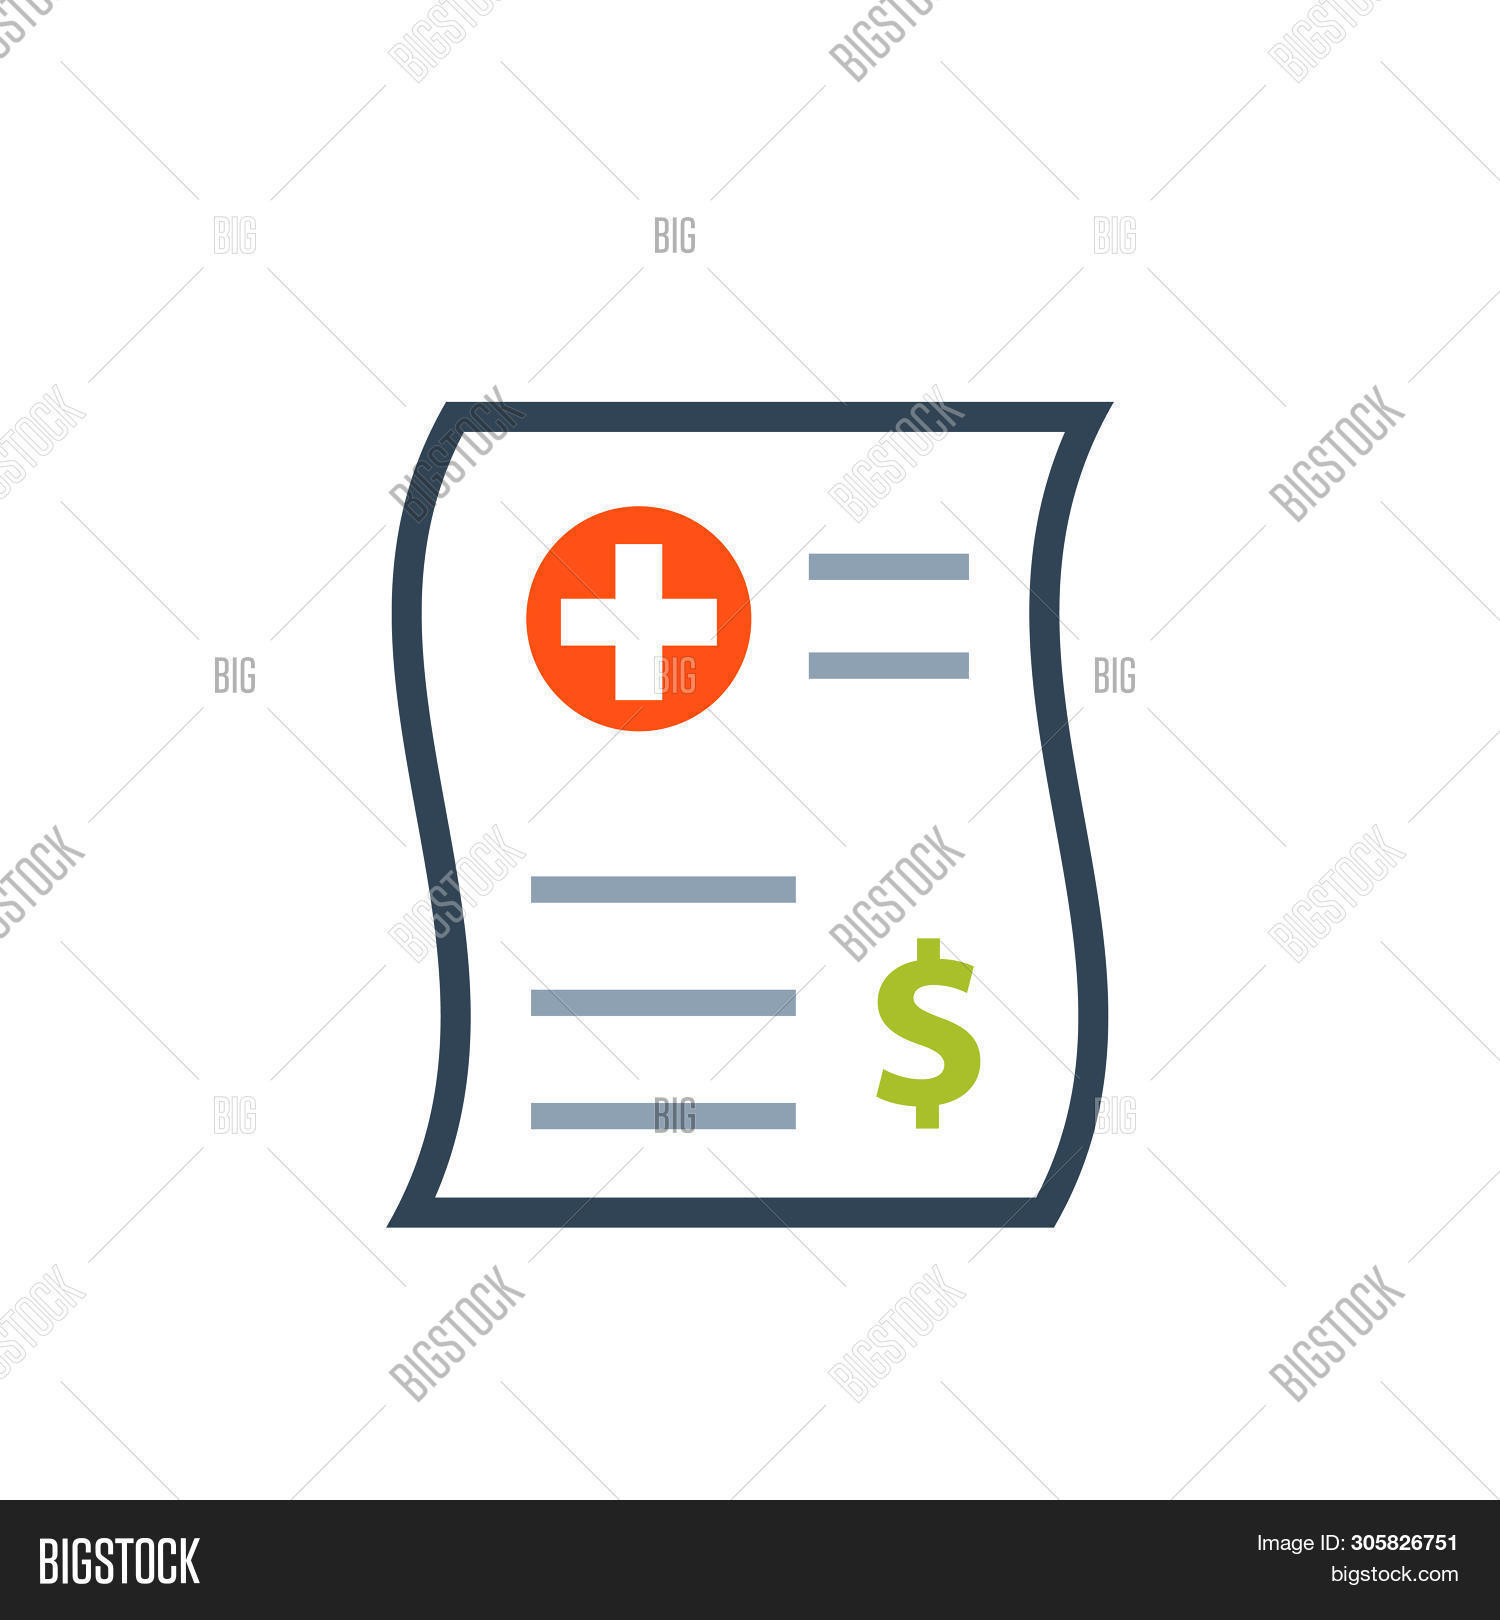 Medical Bill Color Image & Photo (Free Trial).